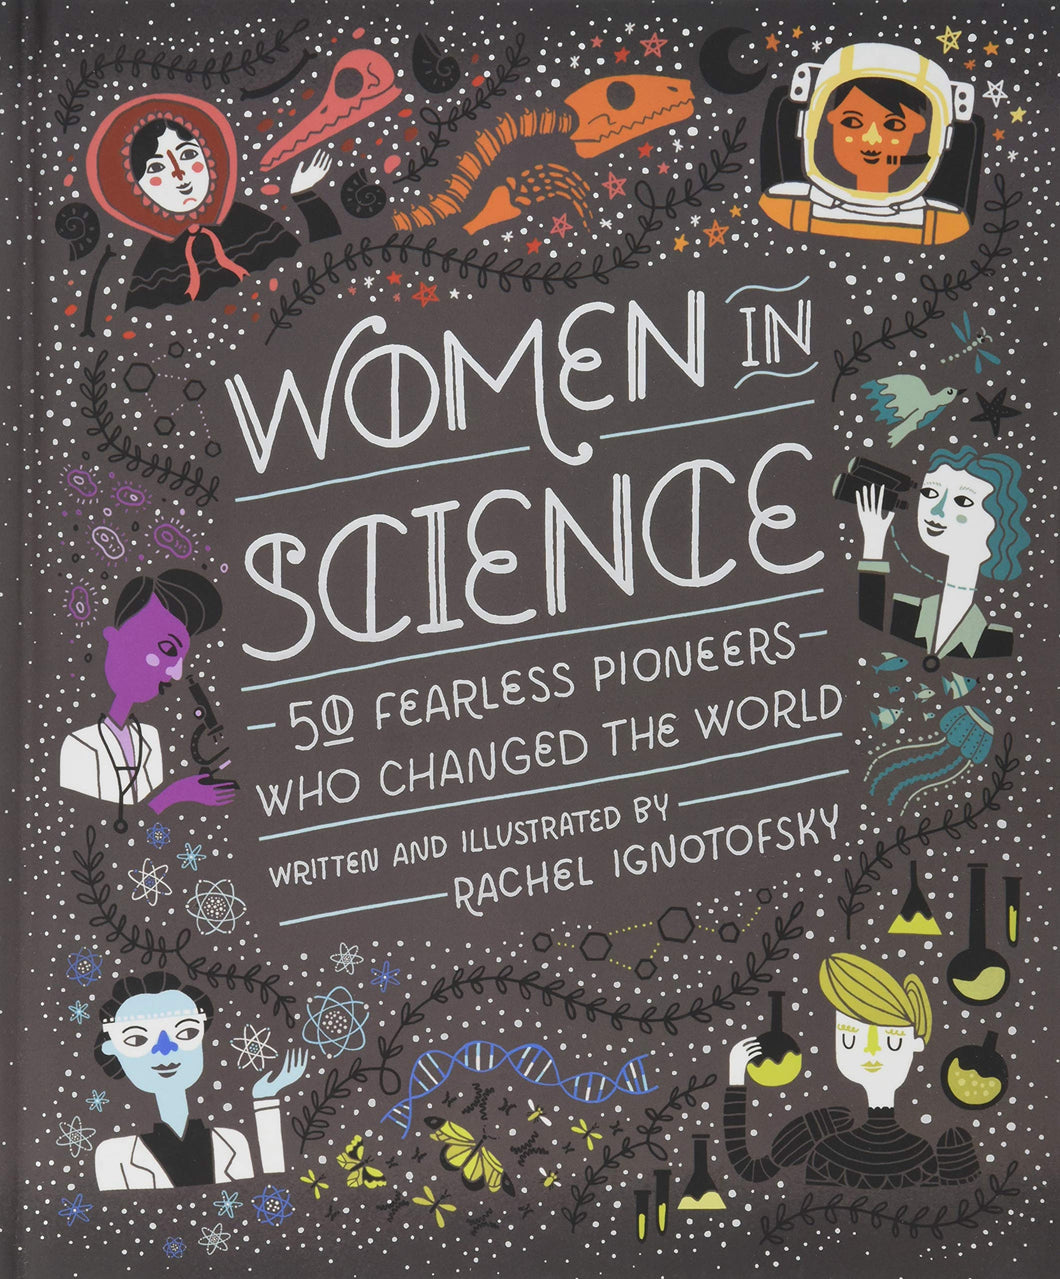 Women in Science: 50 Fearless Pioneers Who Changed the World Me Books Asia Store